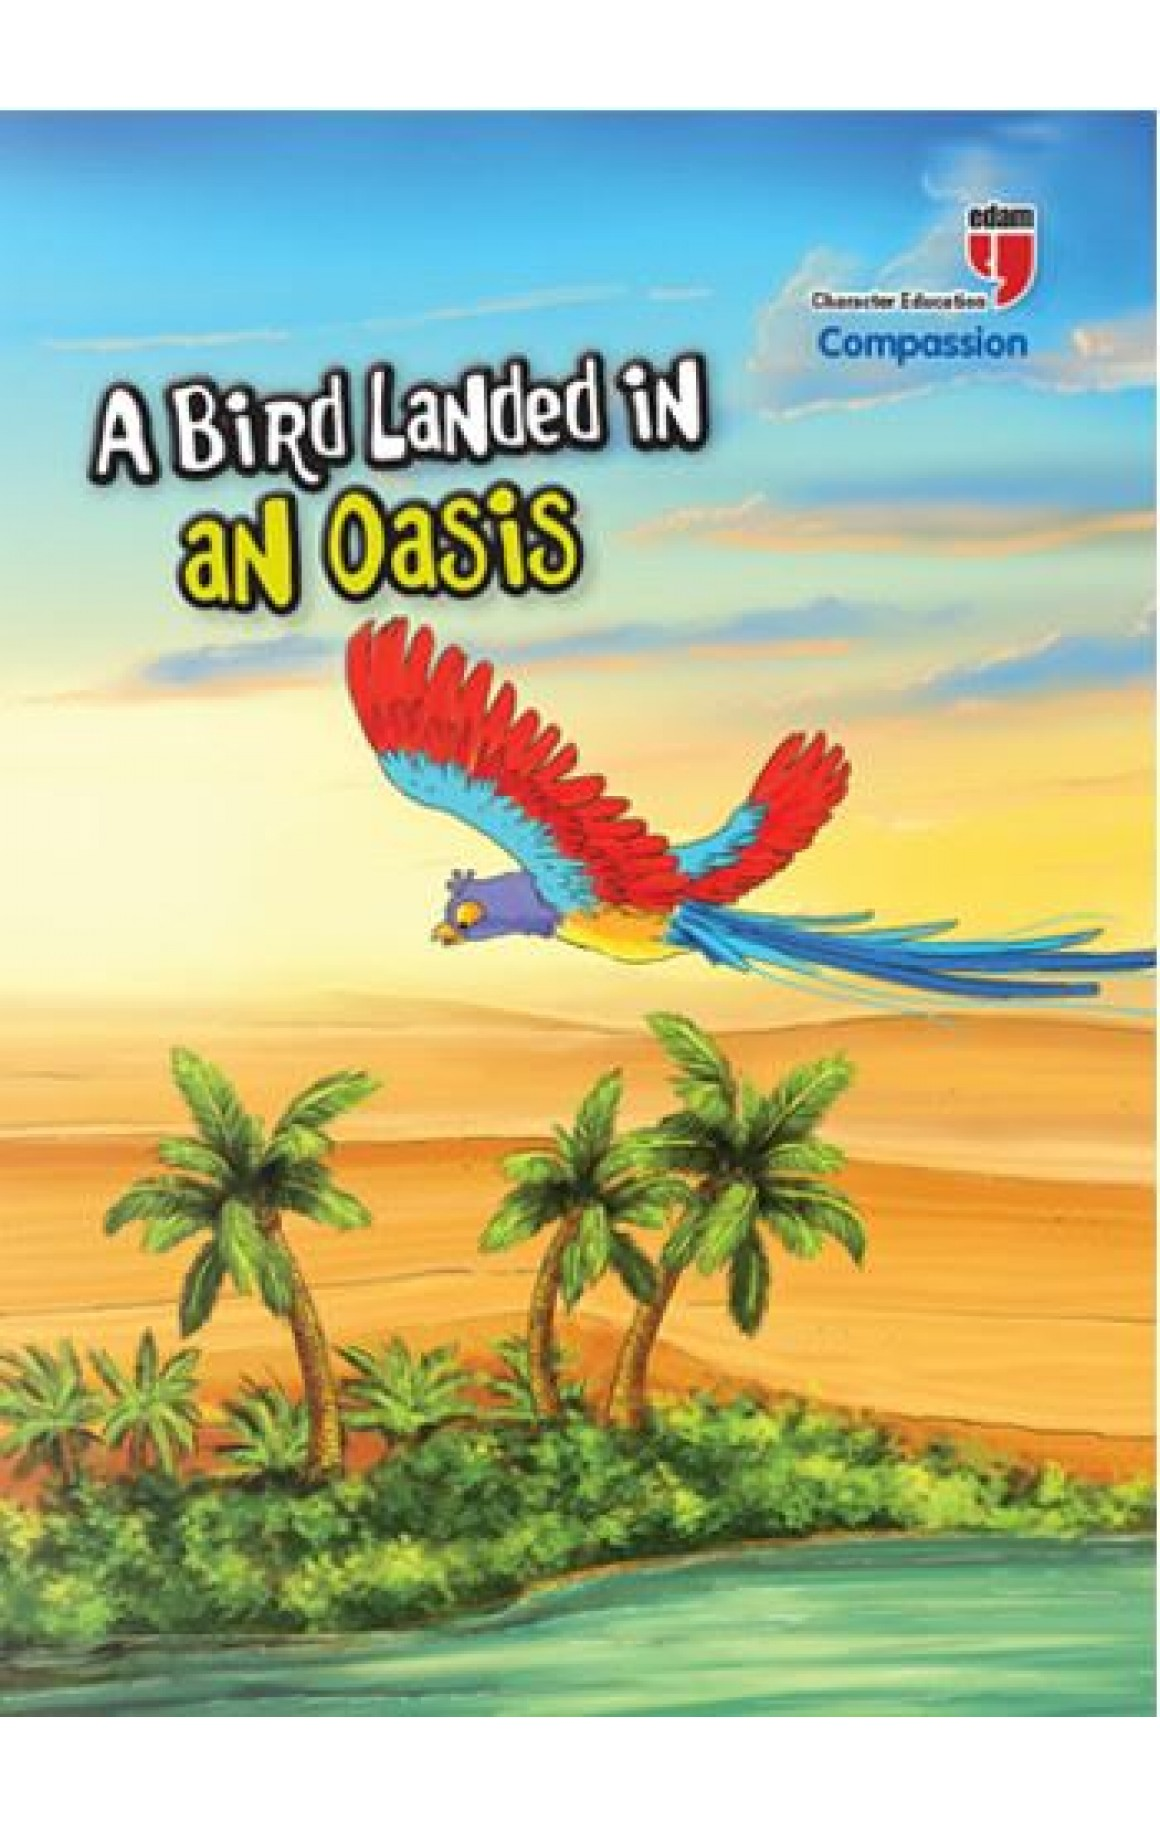 A Bird Landed In An Oasis-Compassion